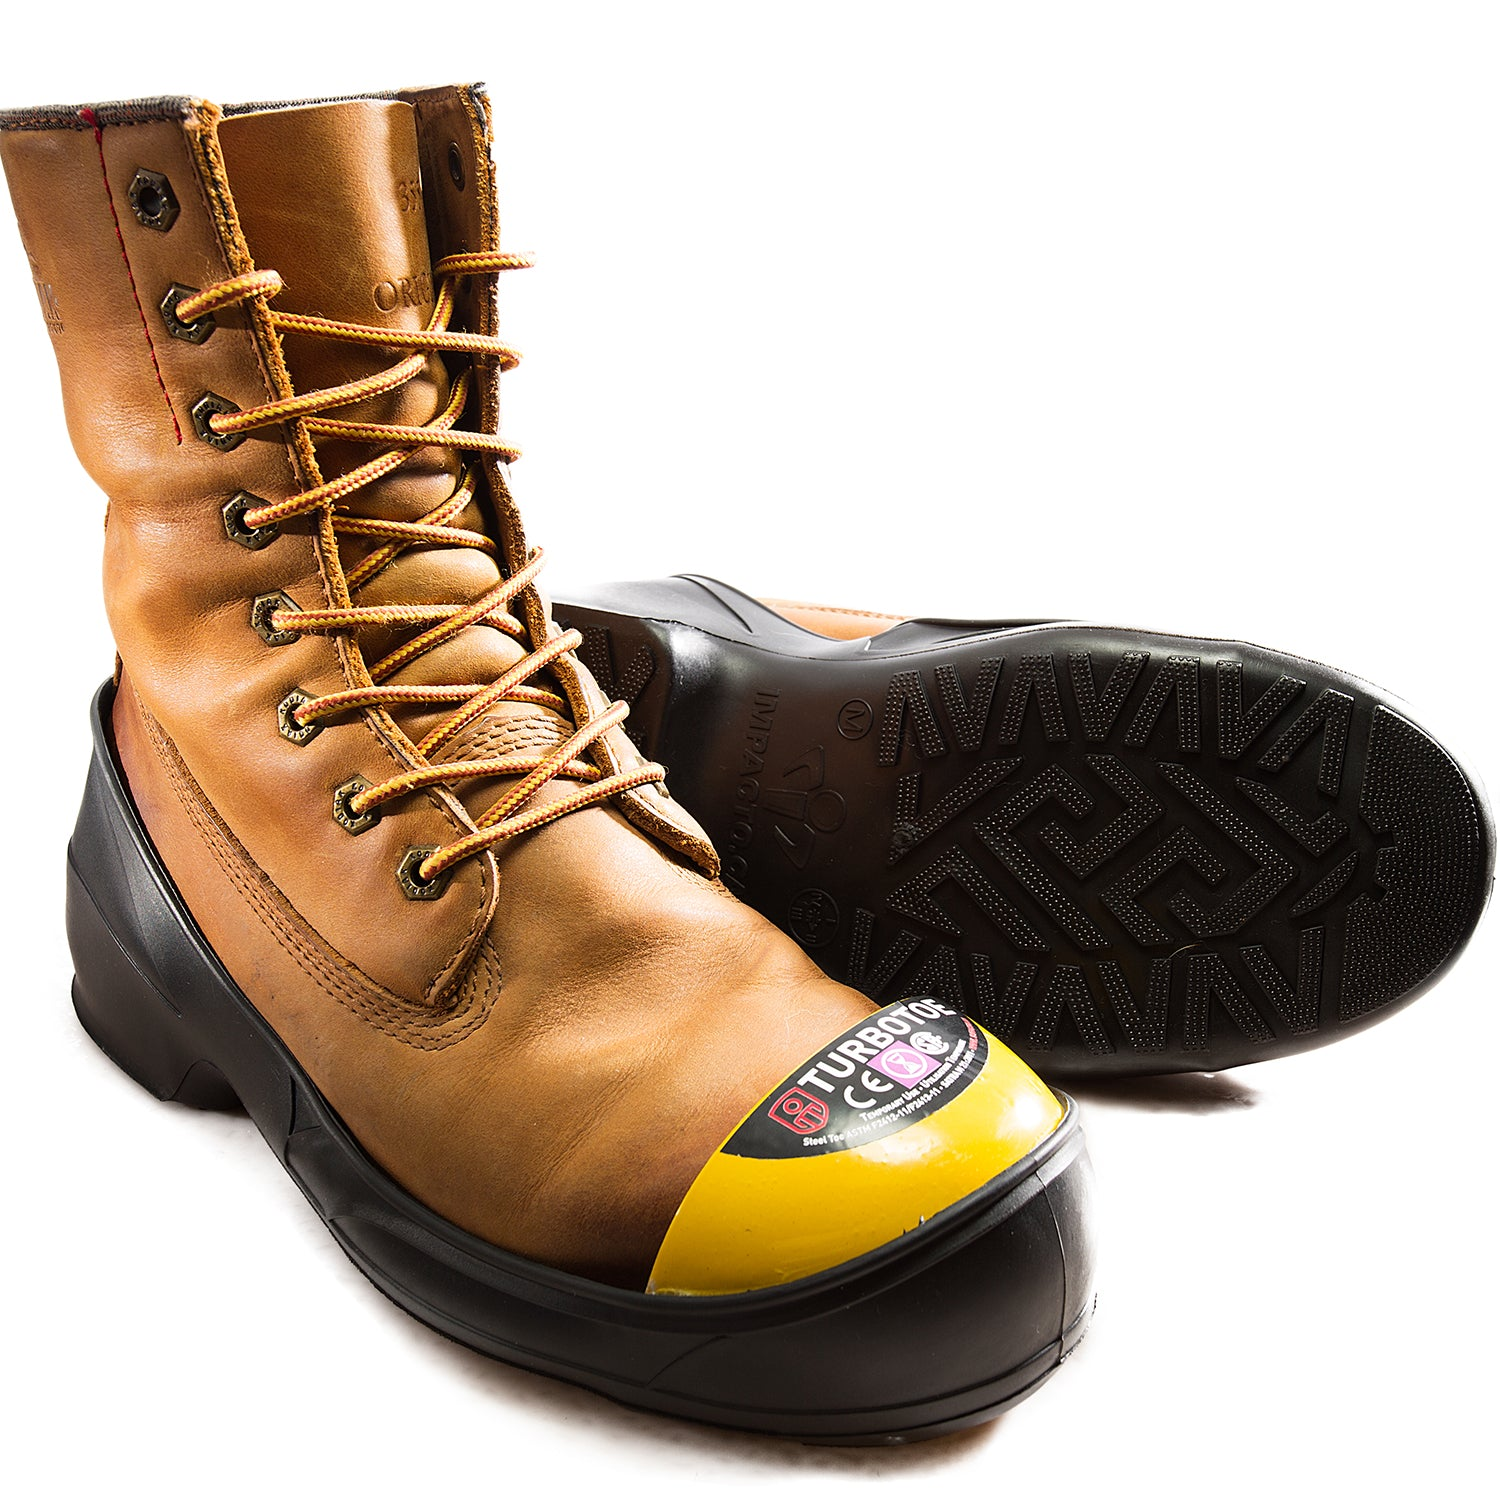 Turbotoe Steel Cap Overshoes are steel toe caps that fit over existing shoes to give you temporary steel toe cap protection instead of needing steel toe boots